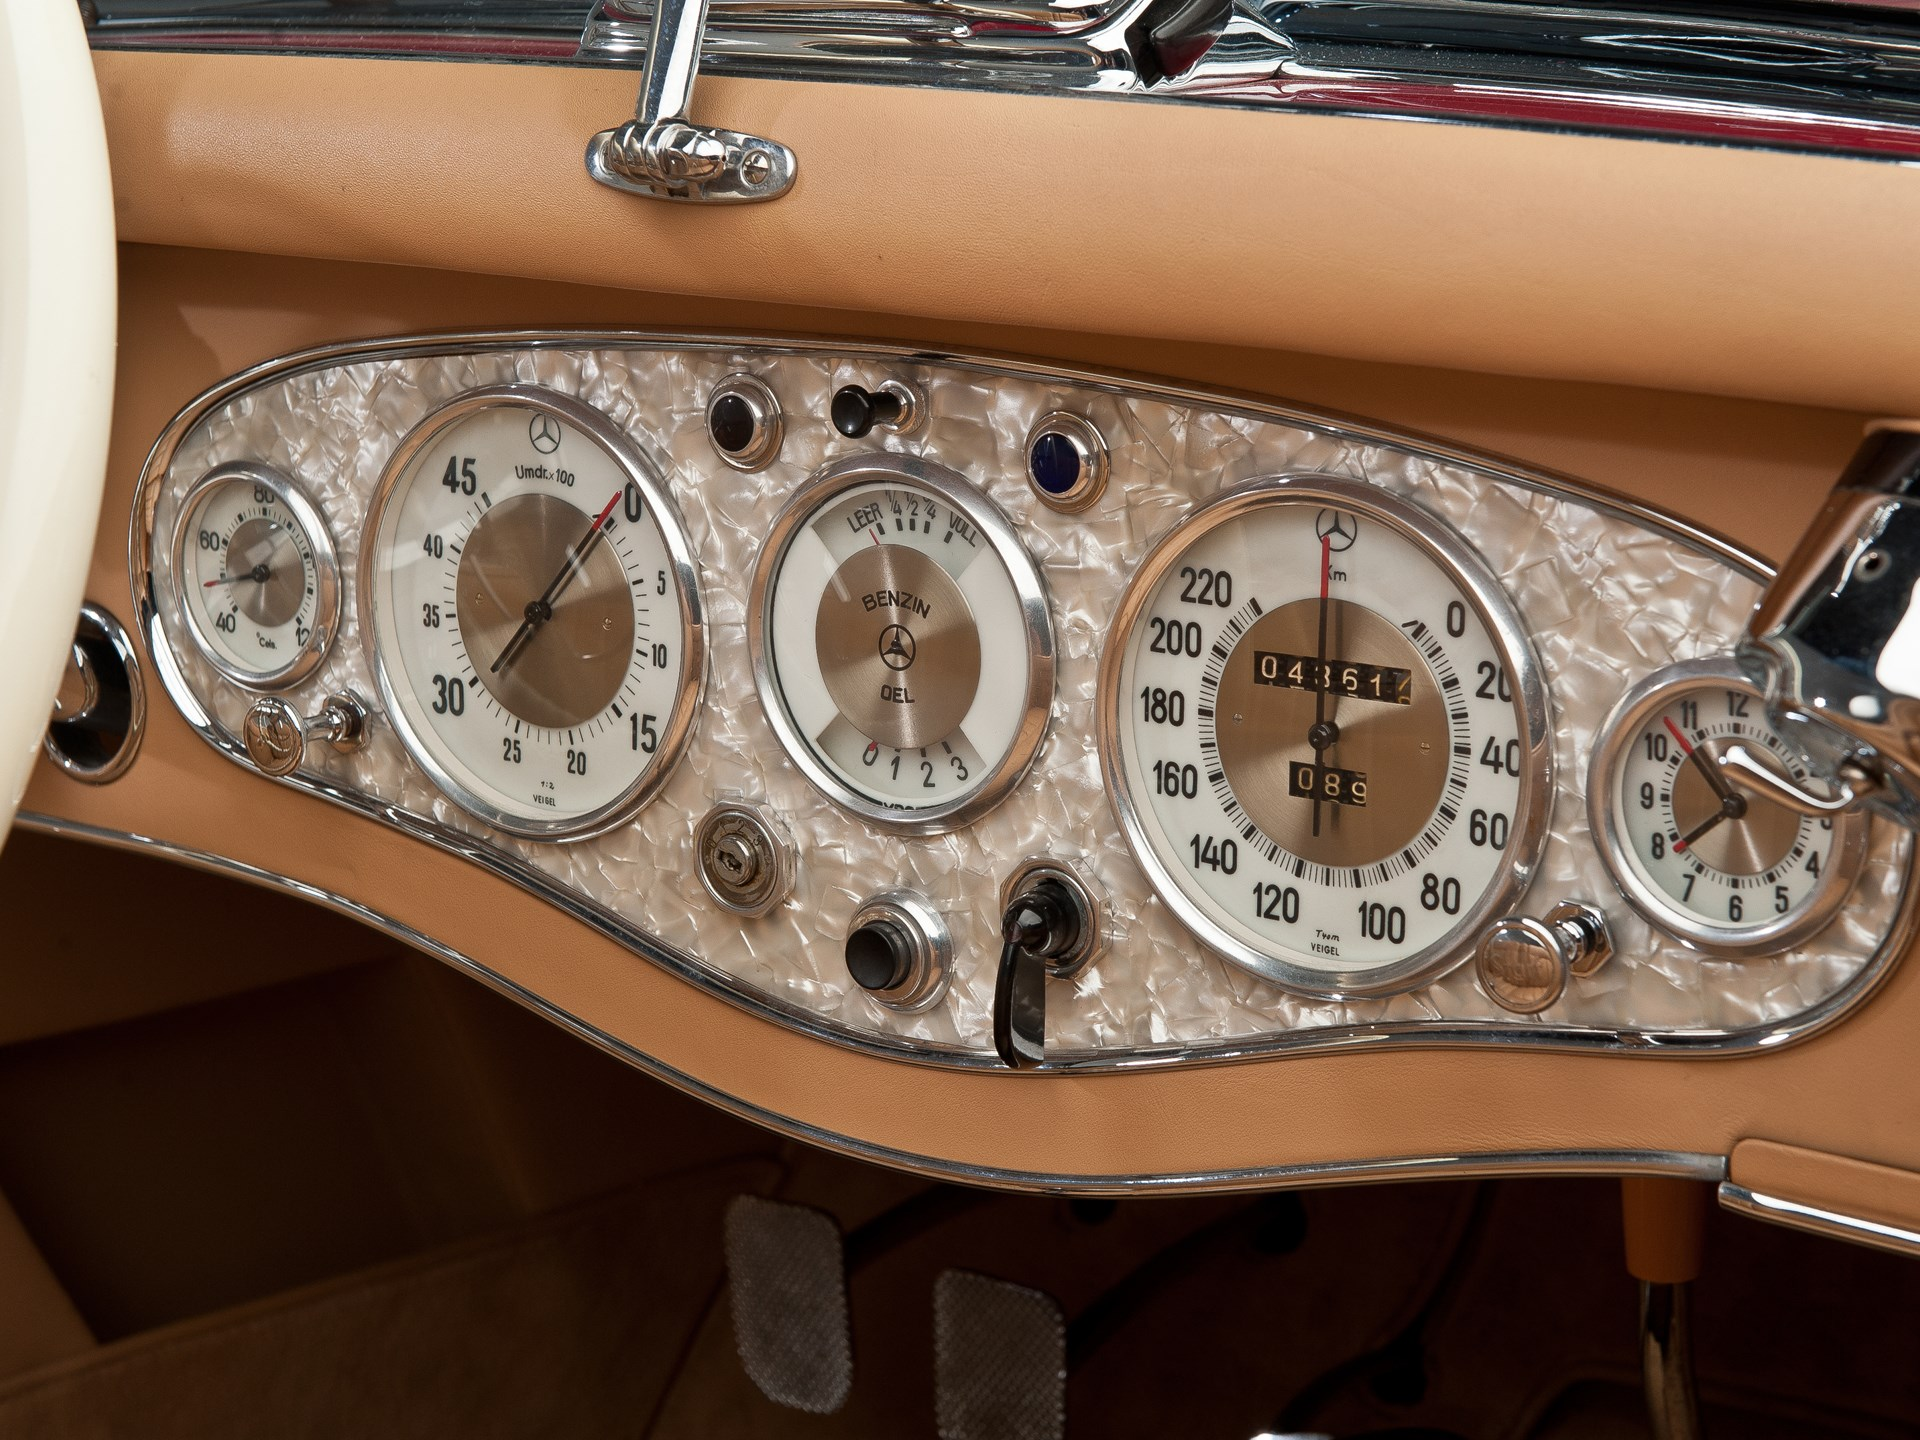 1935 Mercedes-Benz 500k gauges